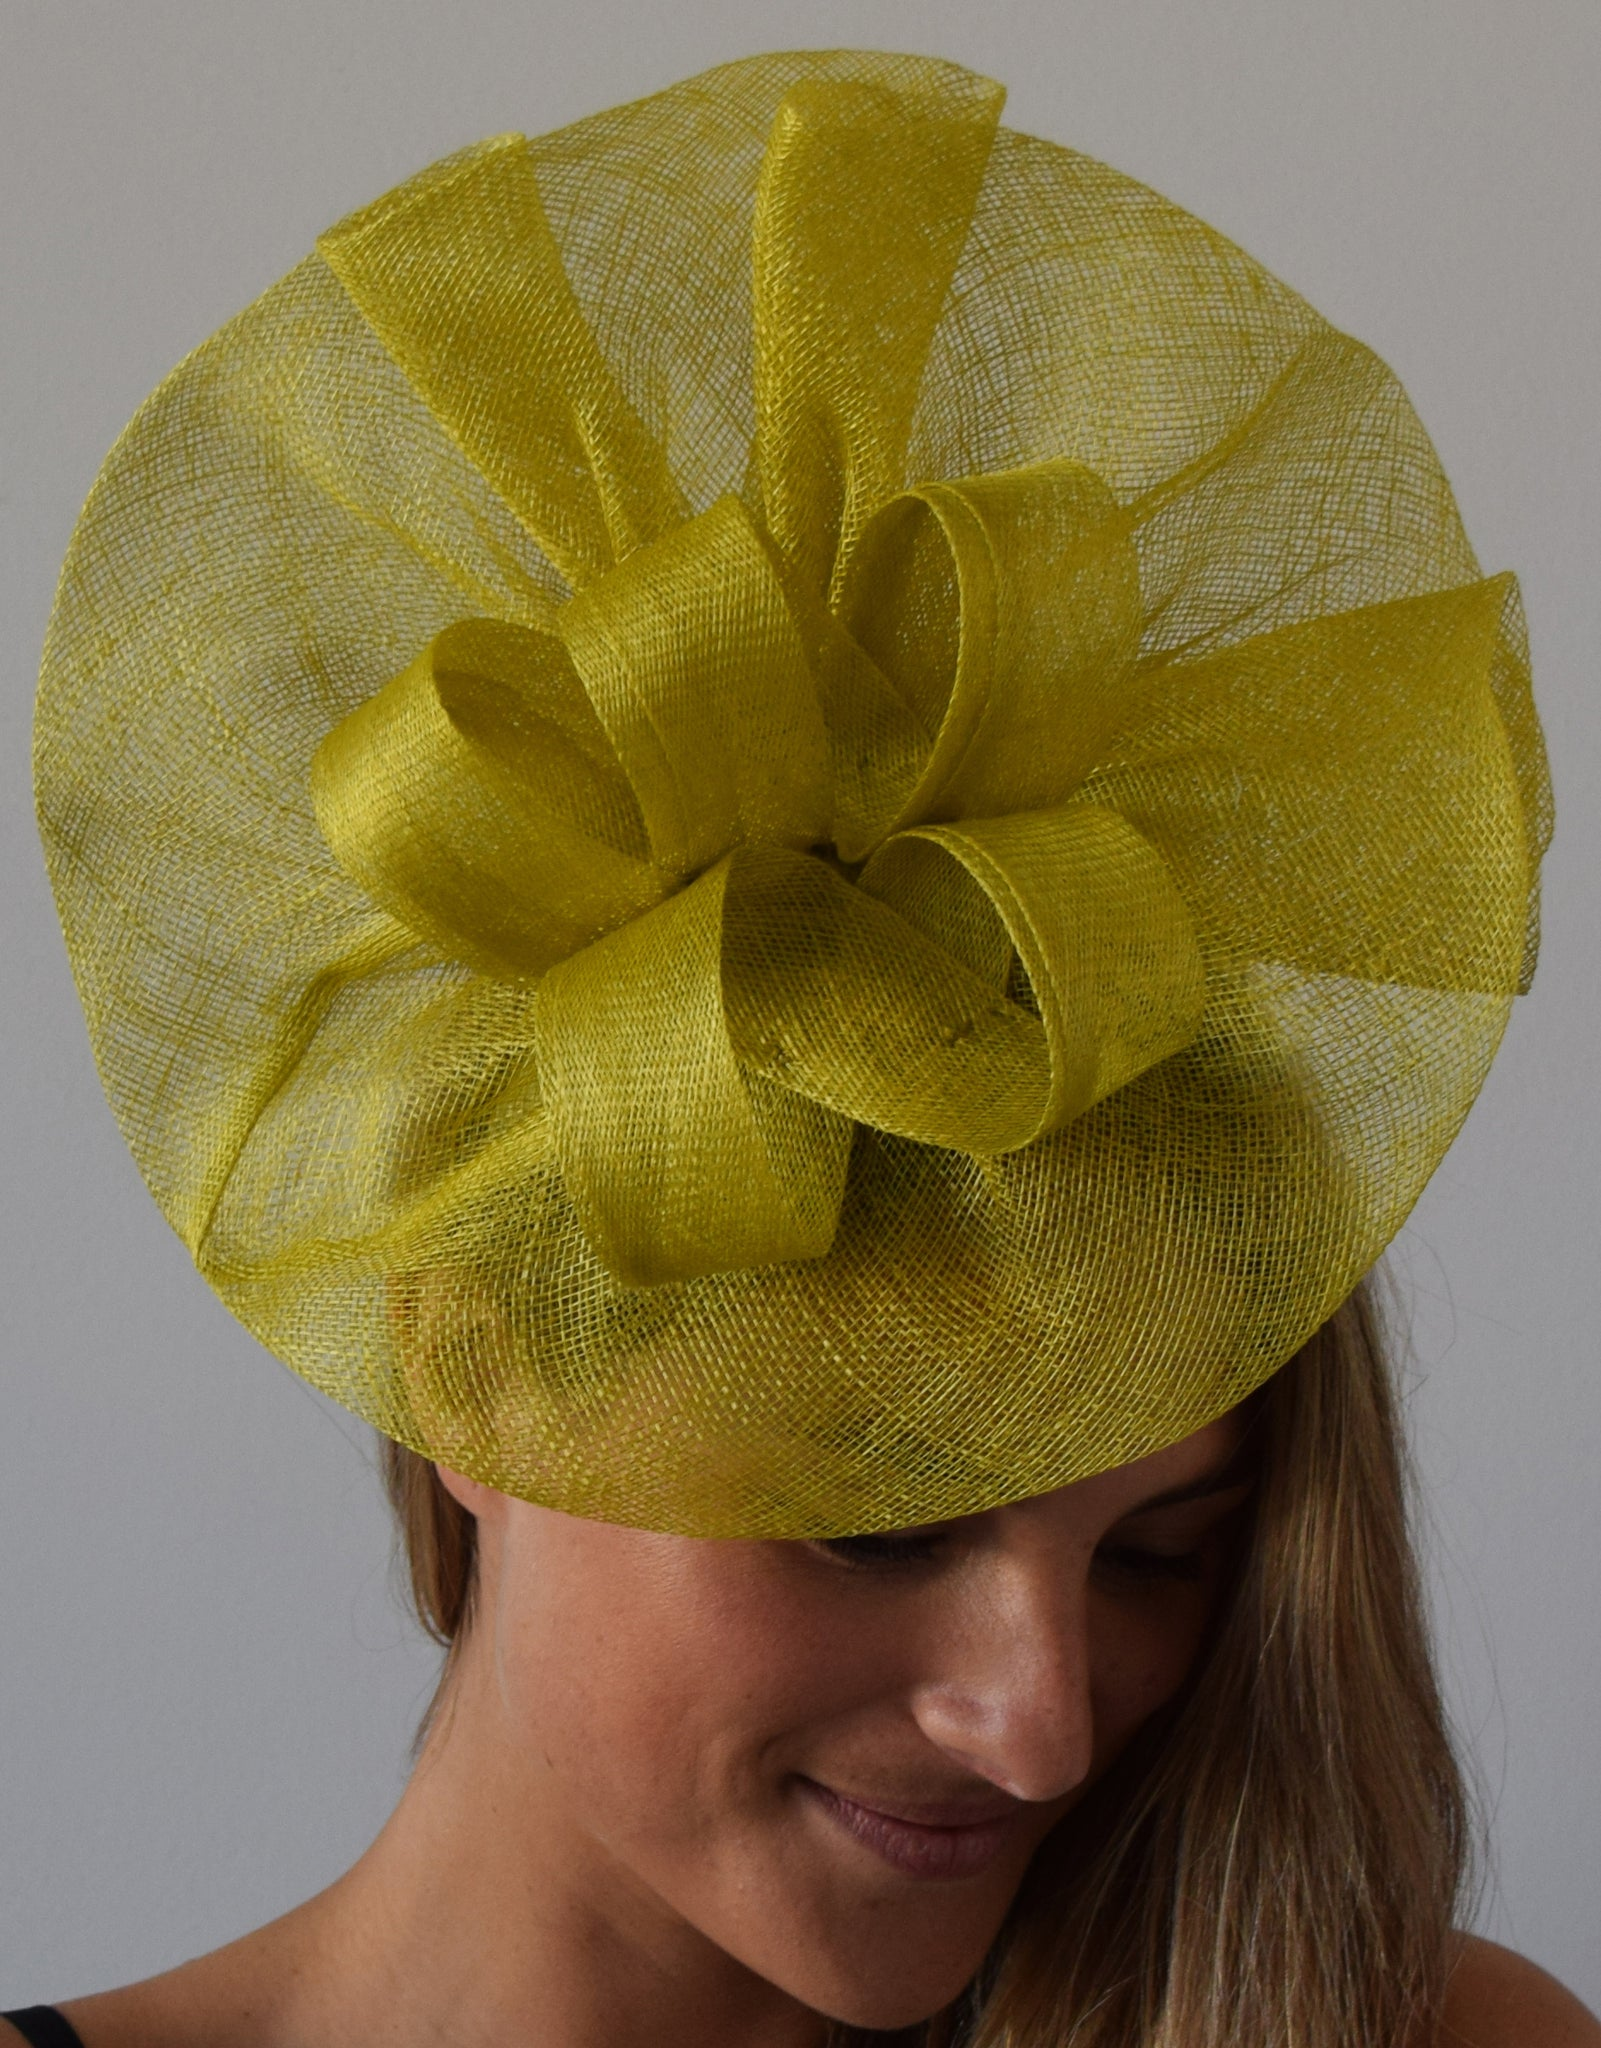 Tia Big Lime Green/Yellow Kentucky Derby Fascinator,Royal Wedding Hat, Spring Racing Headband,Fancy Fascinator Hat Lime,Ladies Tea-Party Hat